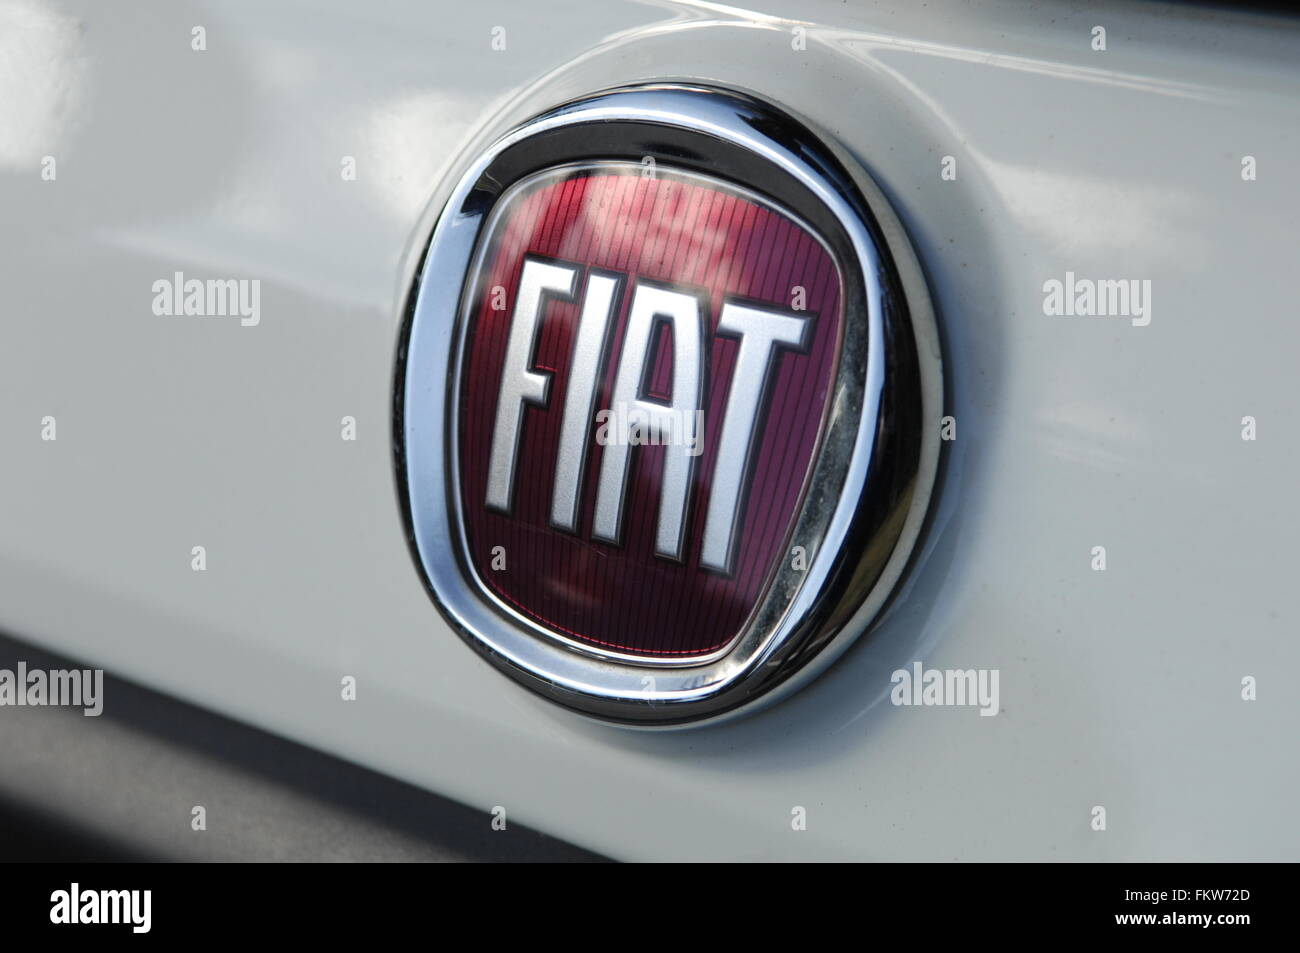 lineaclassic linea limited fiat section classic in best class india automobiles